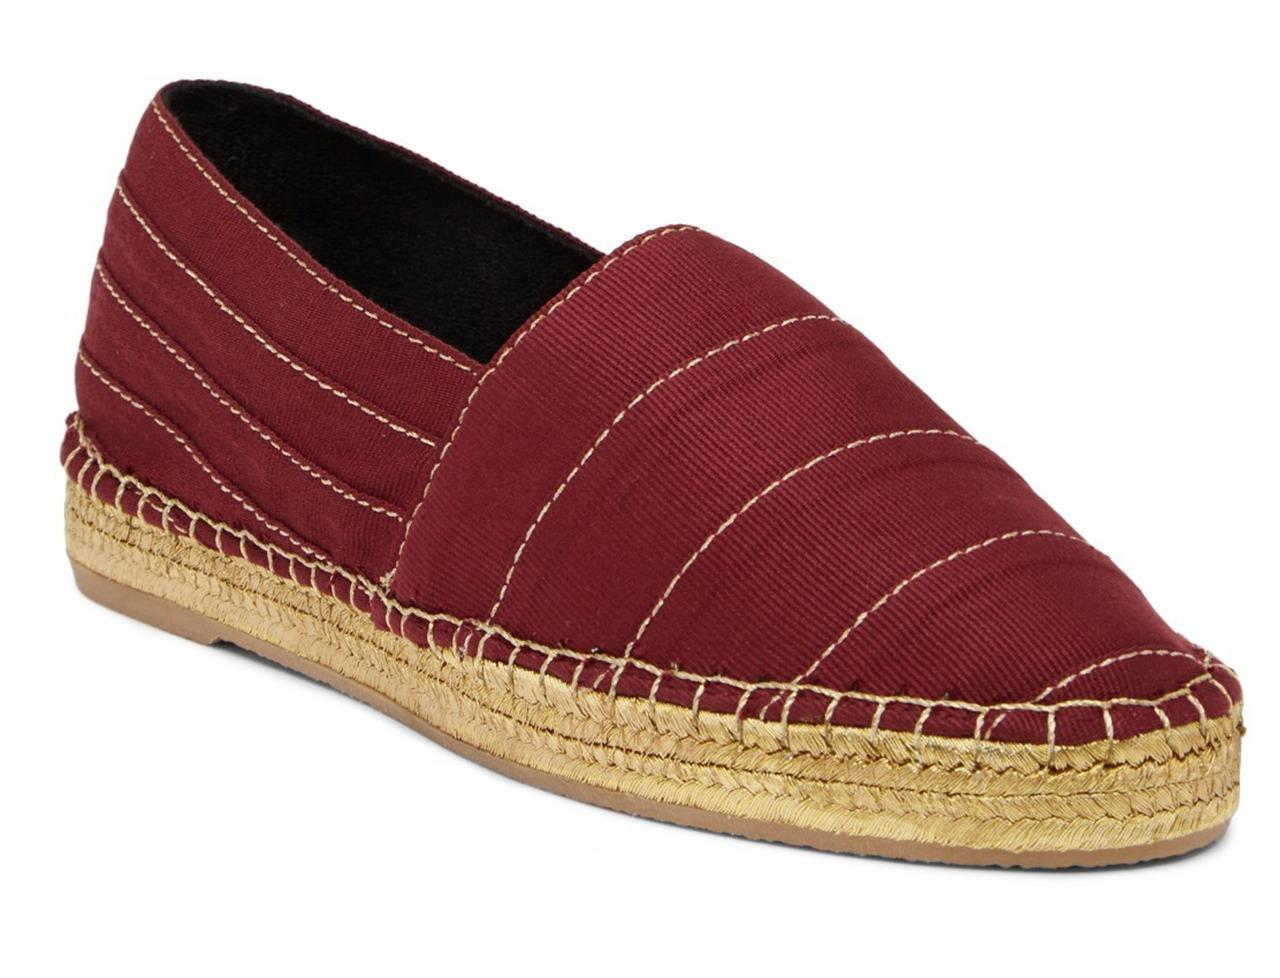 New in Box - $250 Marc Jacobs Sienna Bordeaux Espadrille Flat Size 9 (39) - $54.99